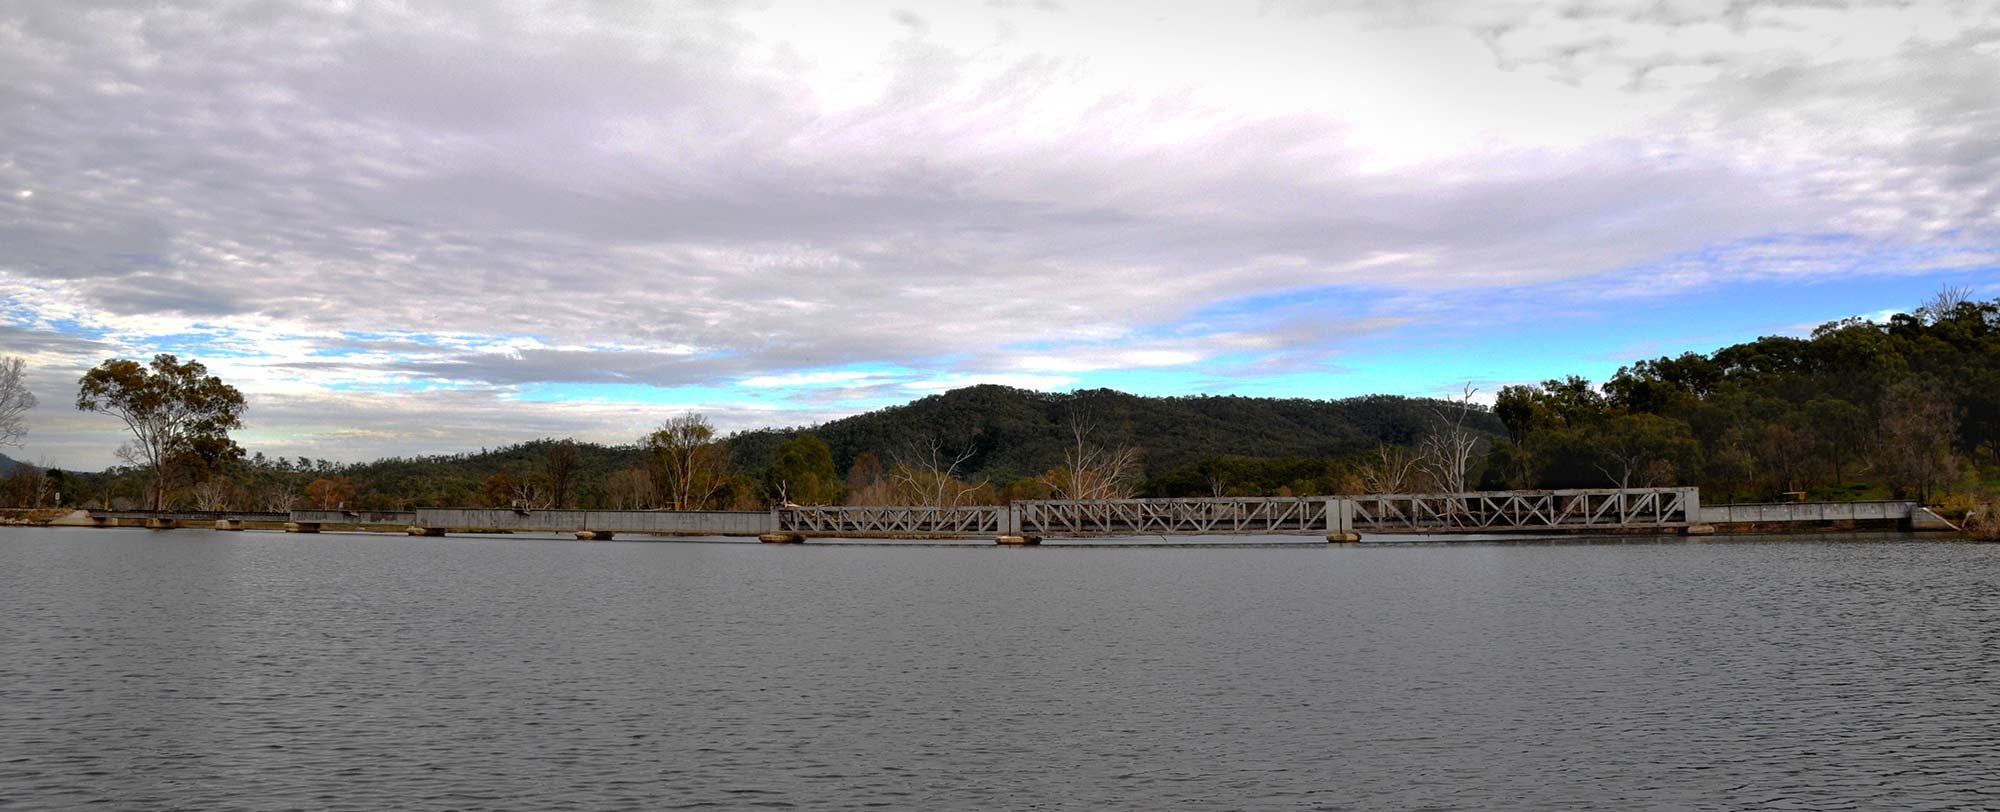 Futter Creek Bridge across Lake Awoonga